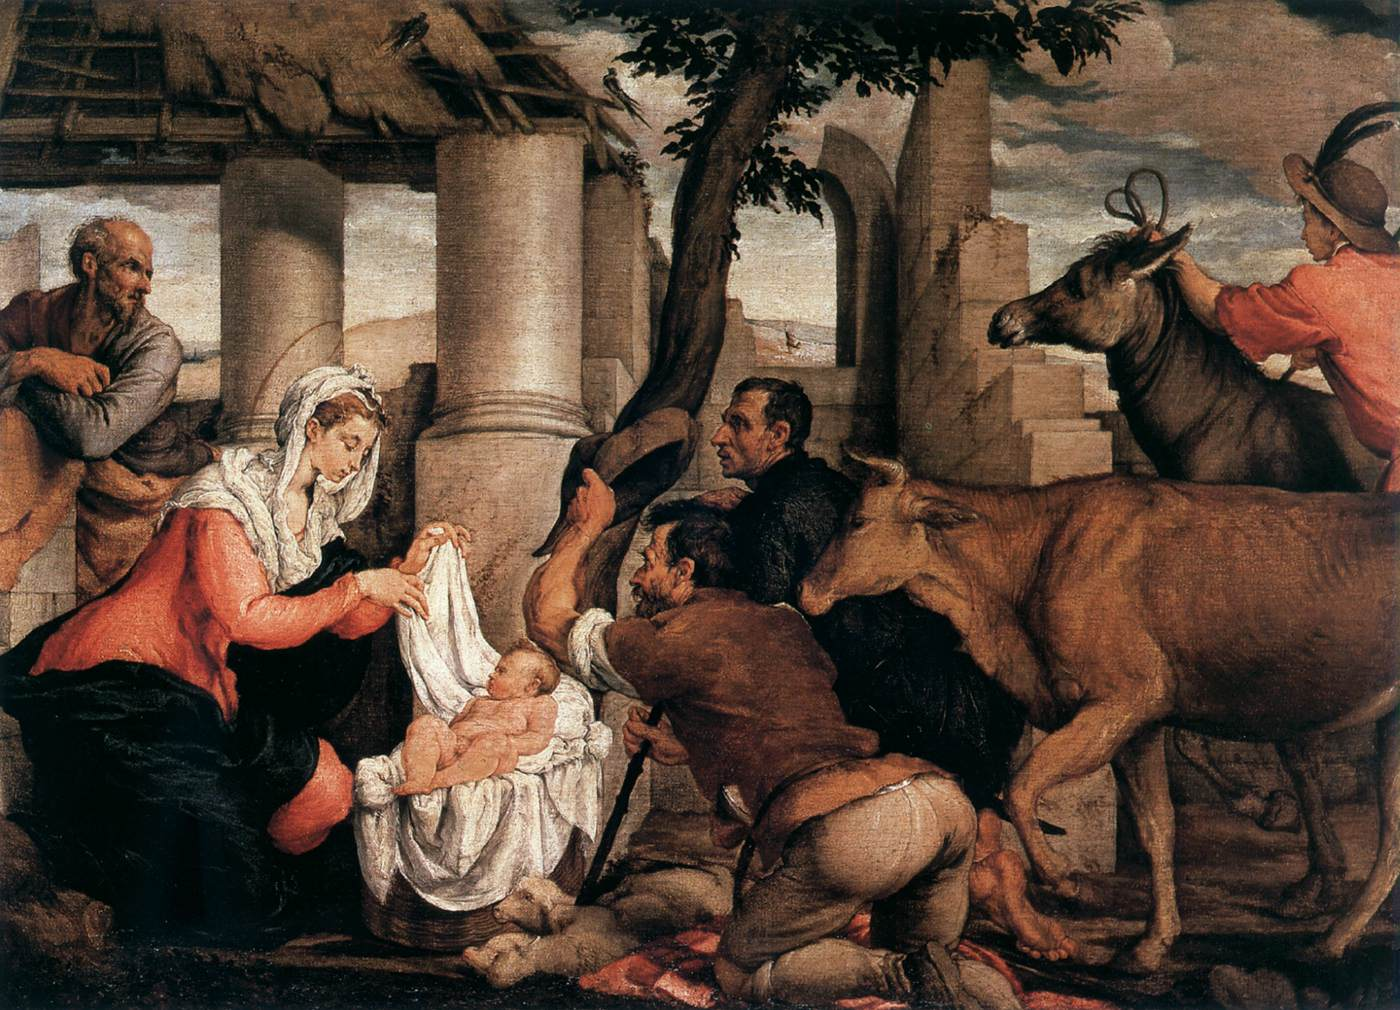 https://upload.wikimedia.org/wikipedia/commons/f/f5/Jacopo_bassano_adoration_of_the_shepherds.jpg